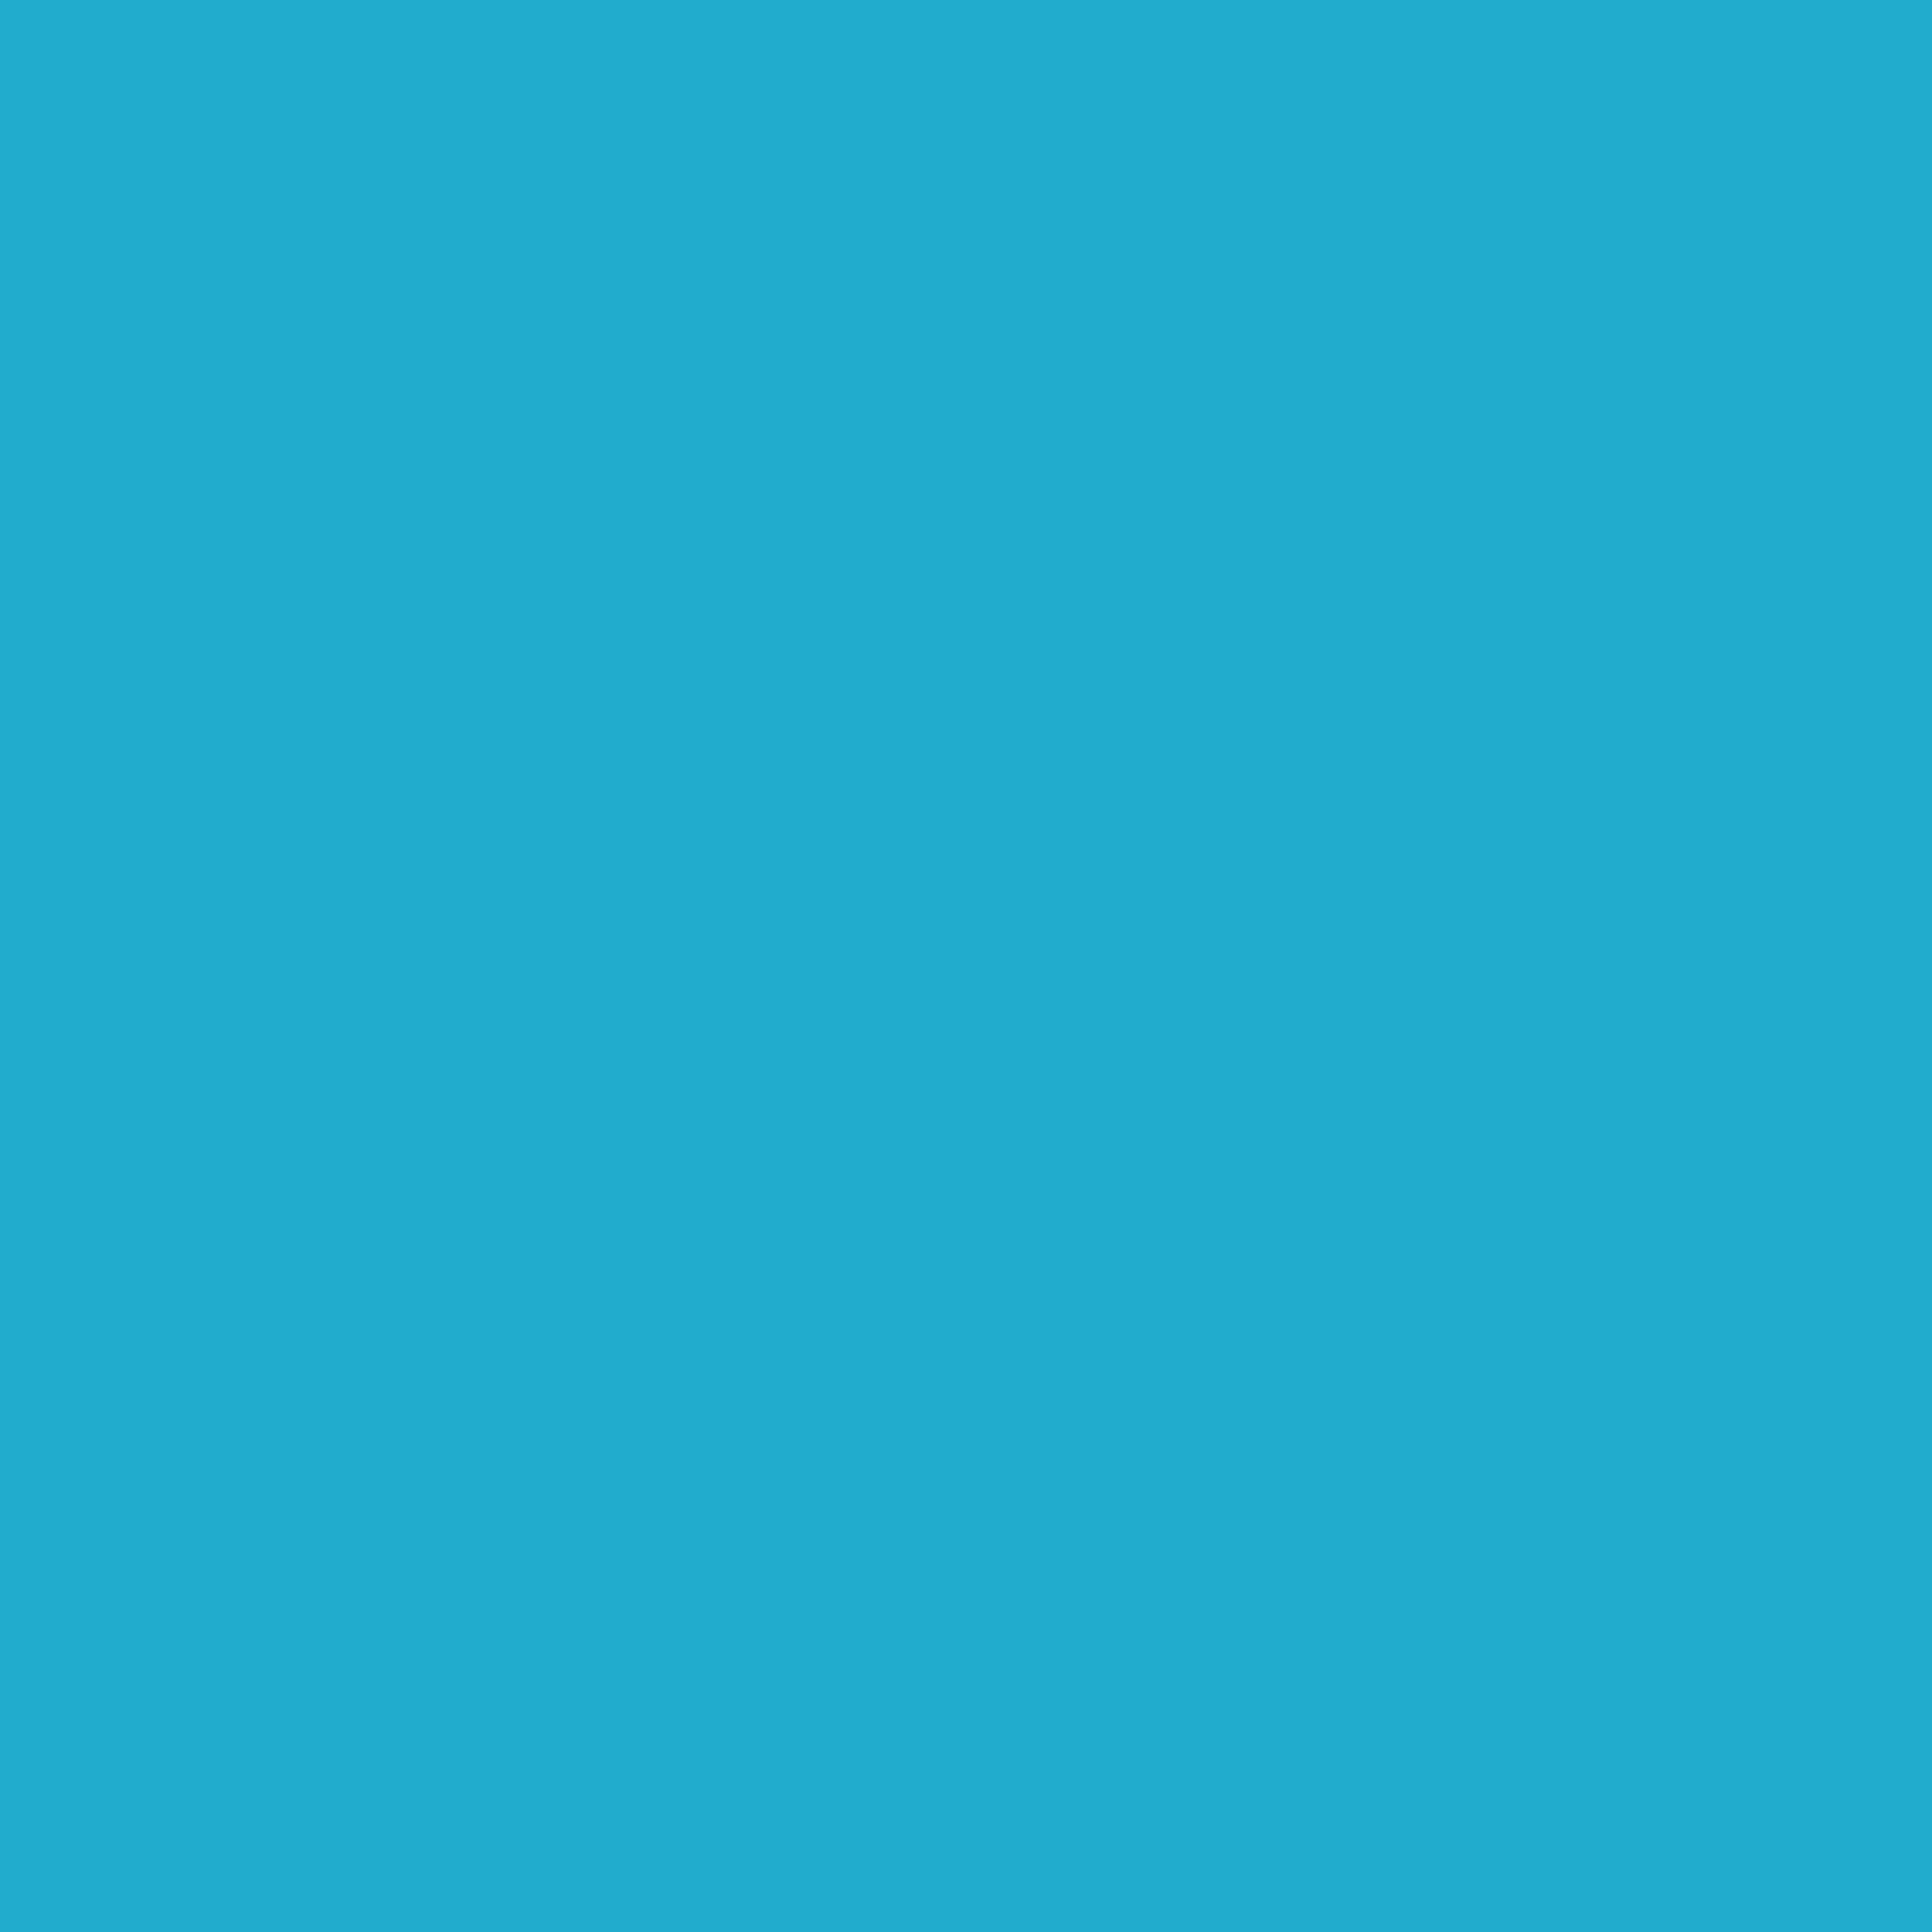 2732x2732 Ball Blue Solid Color Background